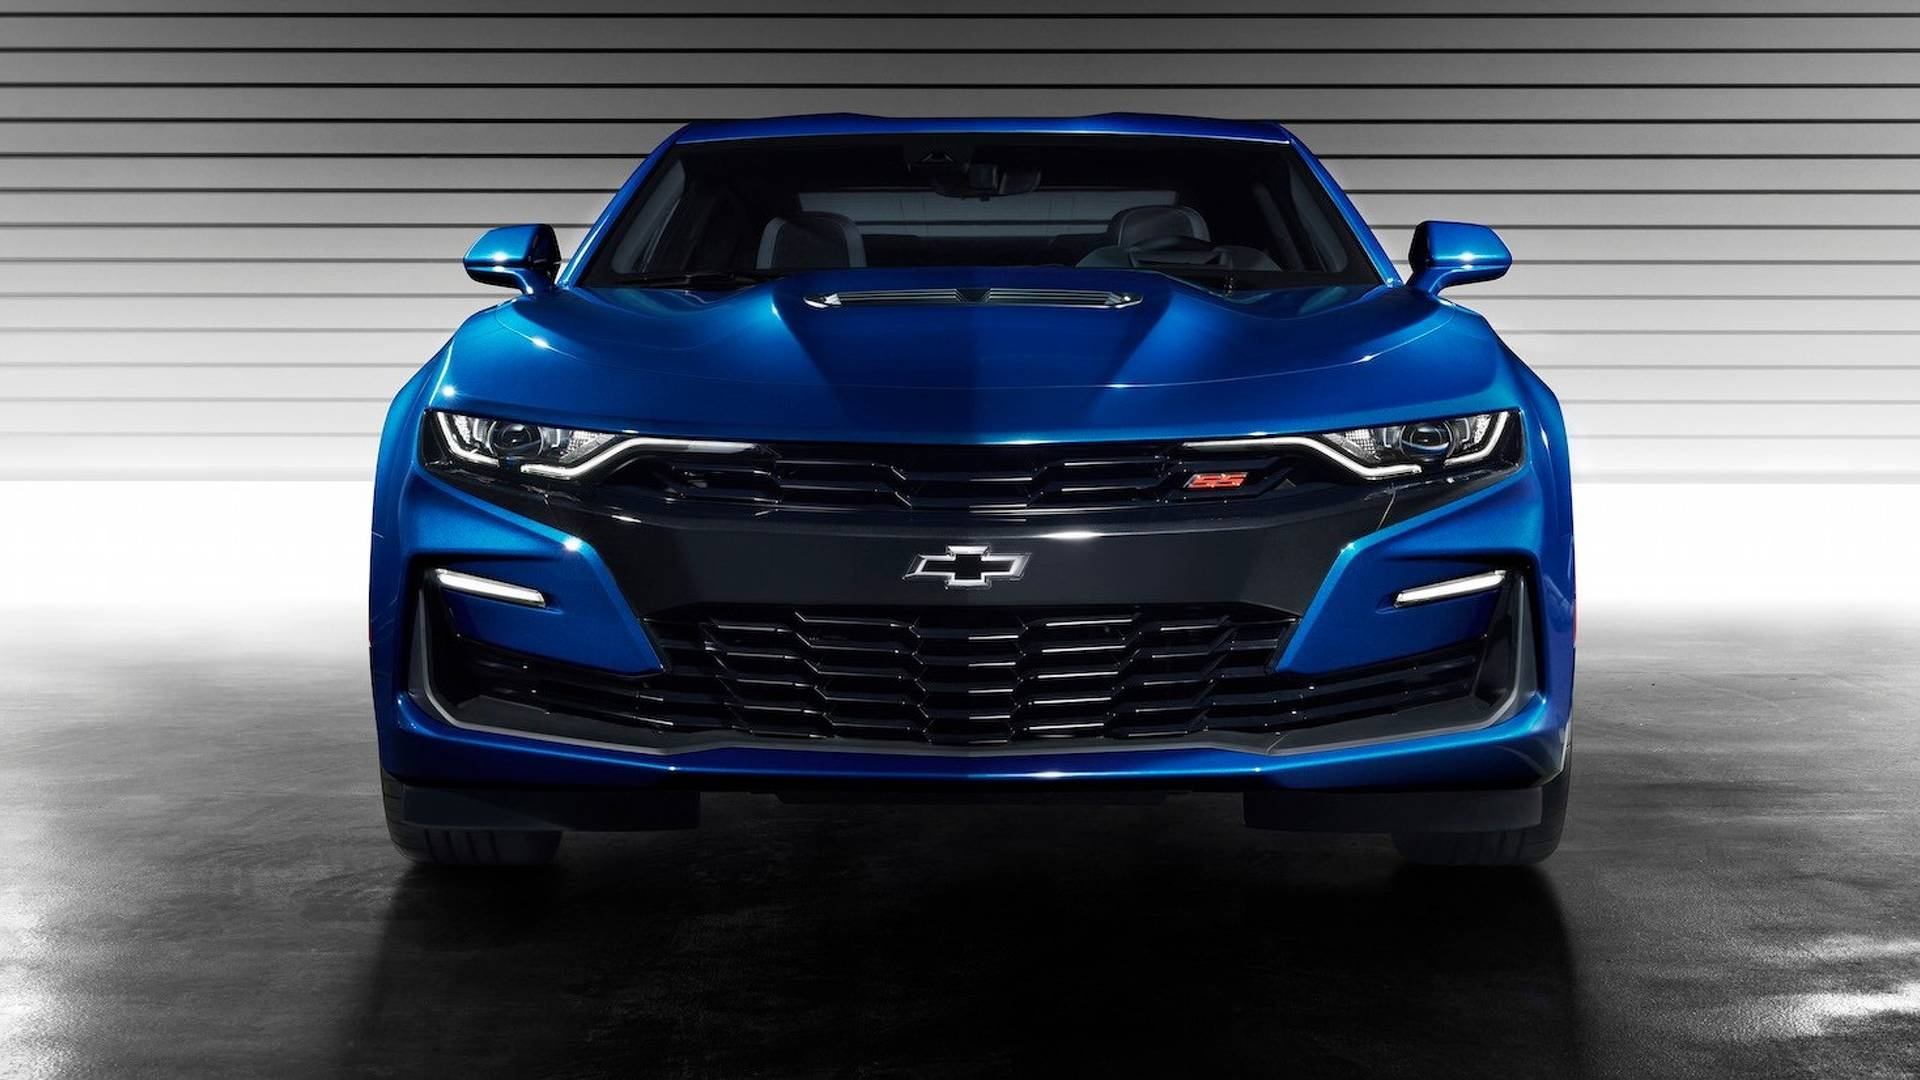 92 New 2020 The Camaro Ss Picture